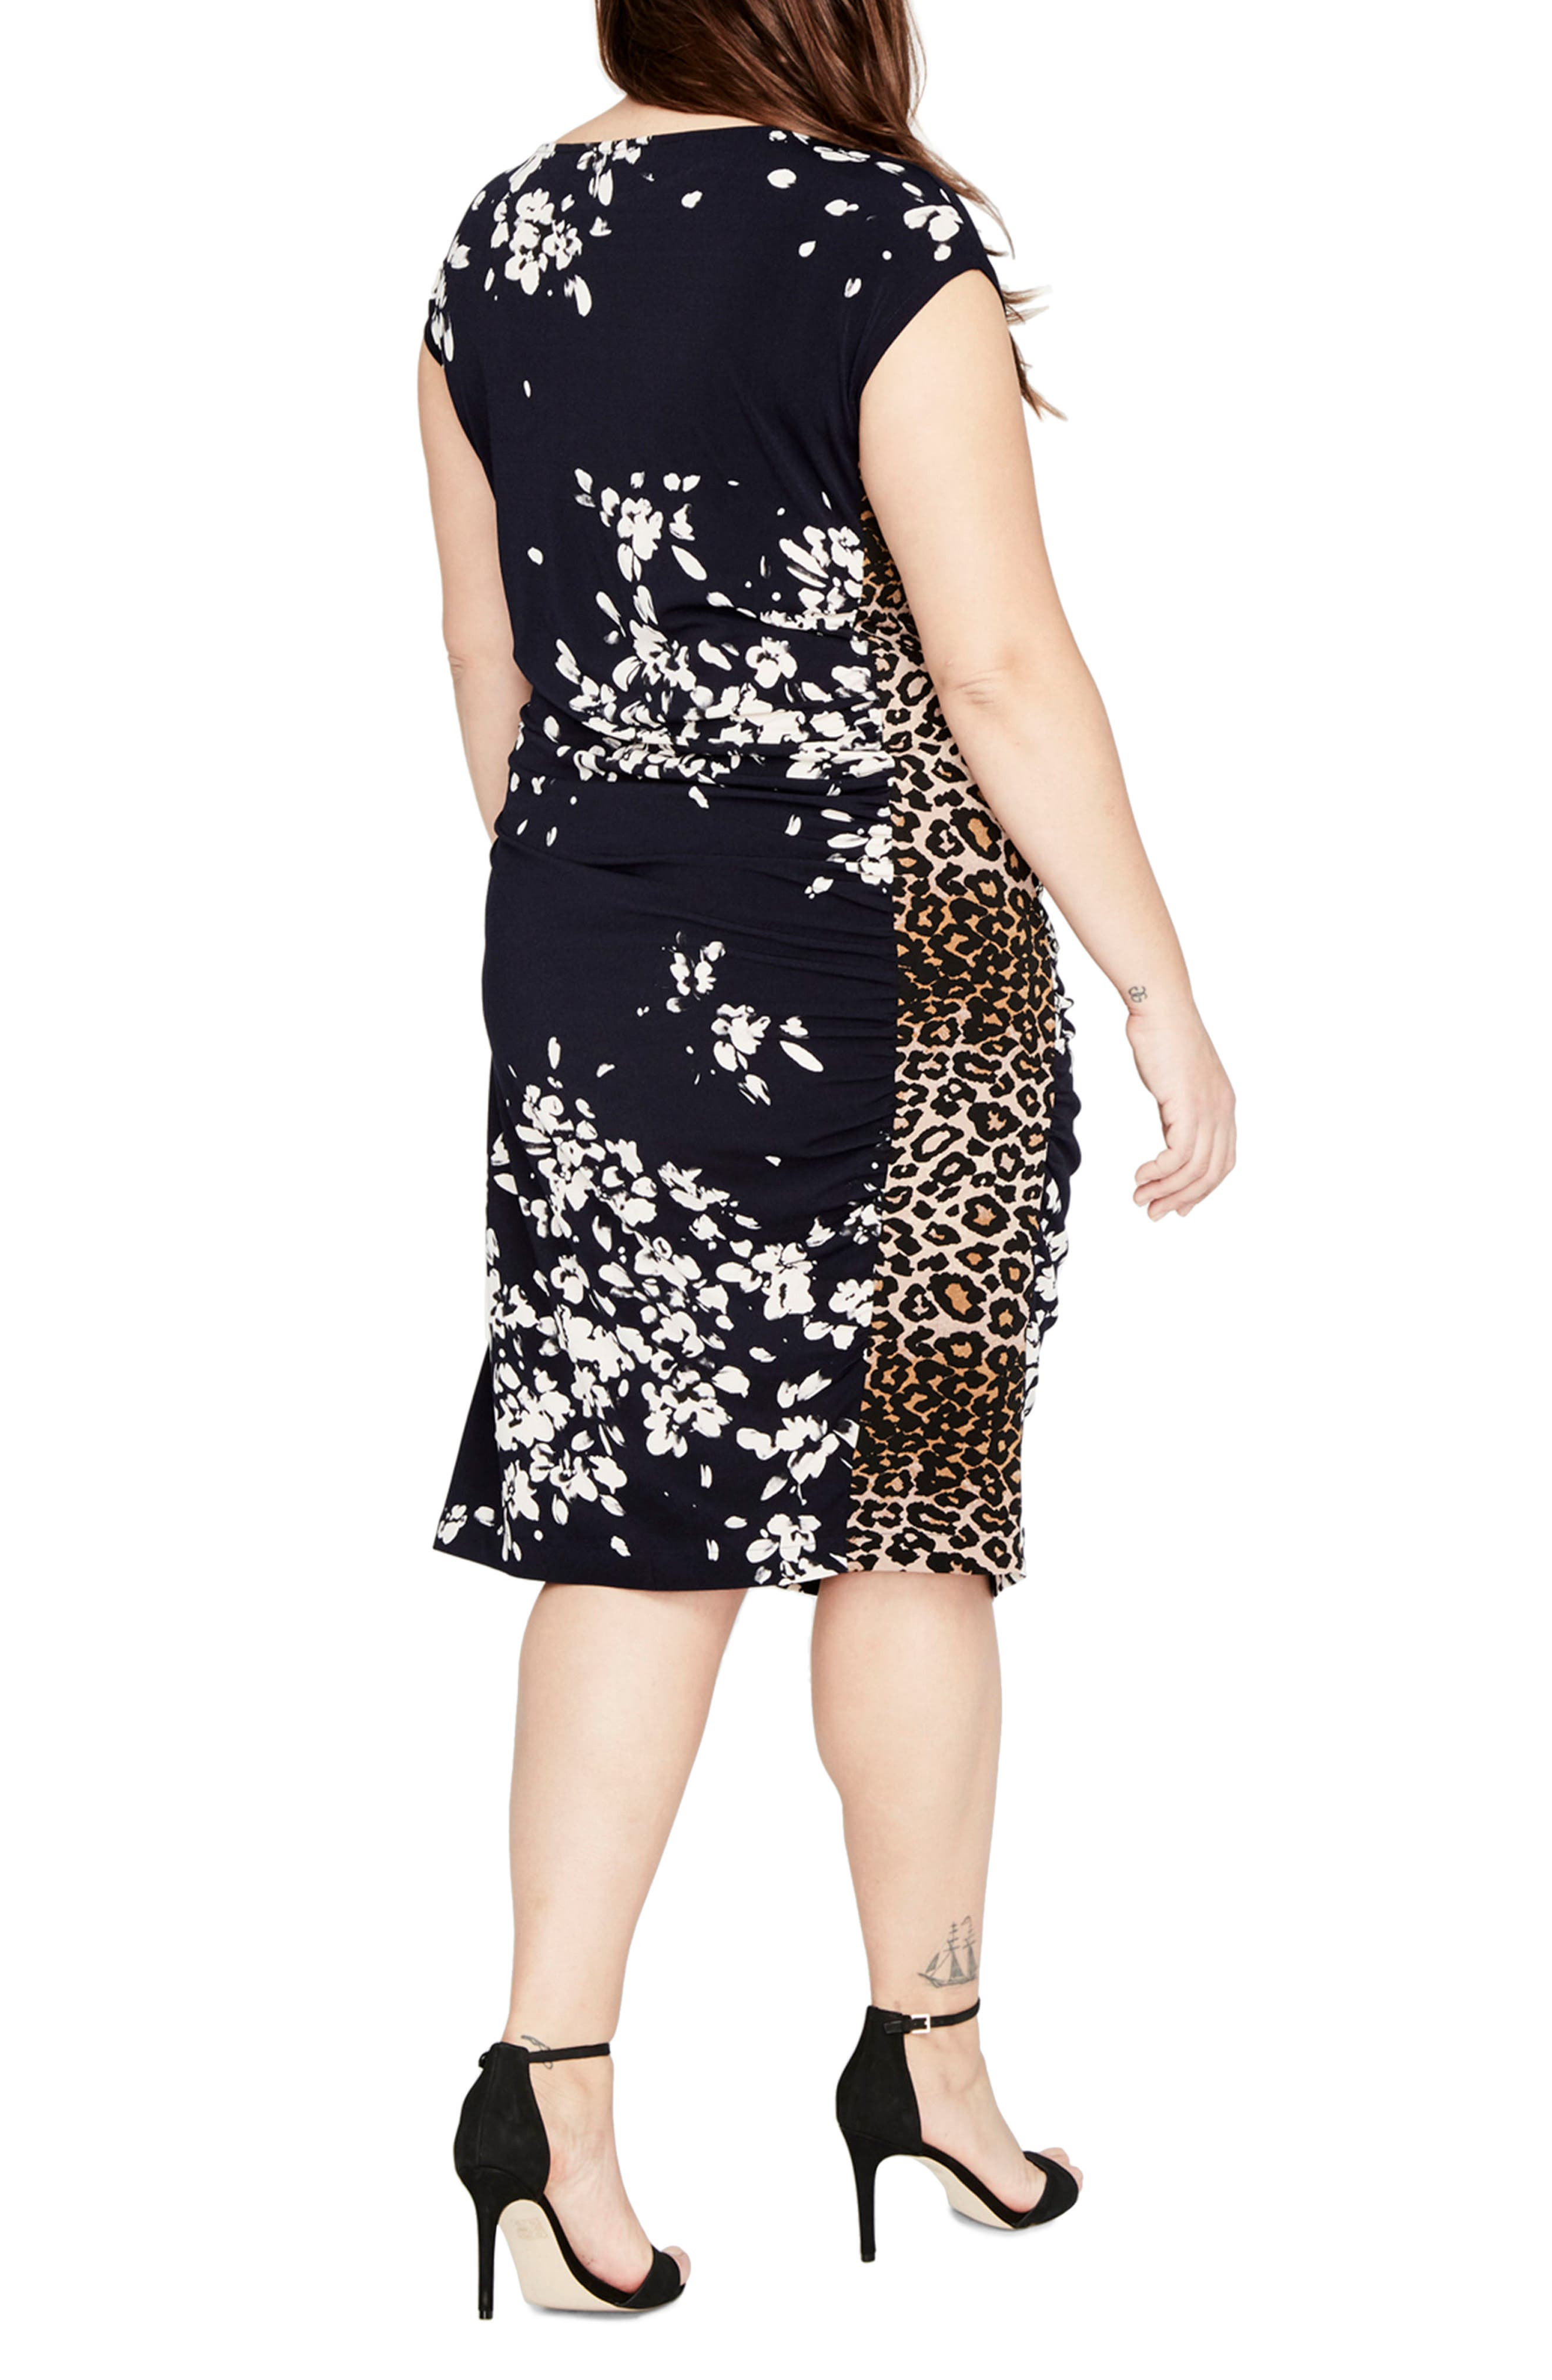 RACHEL RACHEL ROY,                             RACHEL BY Rachel Roy Asymmetrical Floral Dress,                             Alternate thumbnail 2, color,                             411